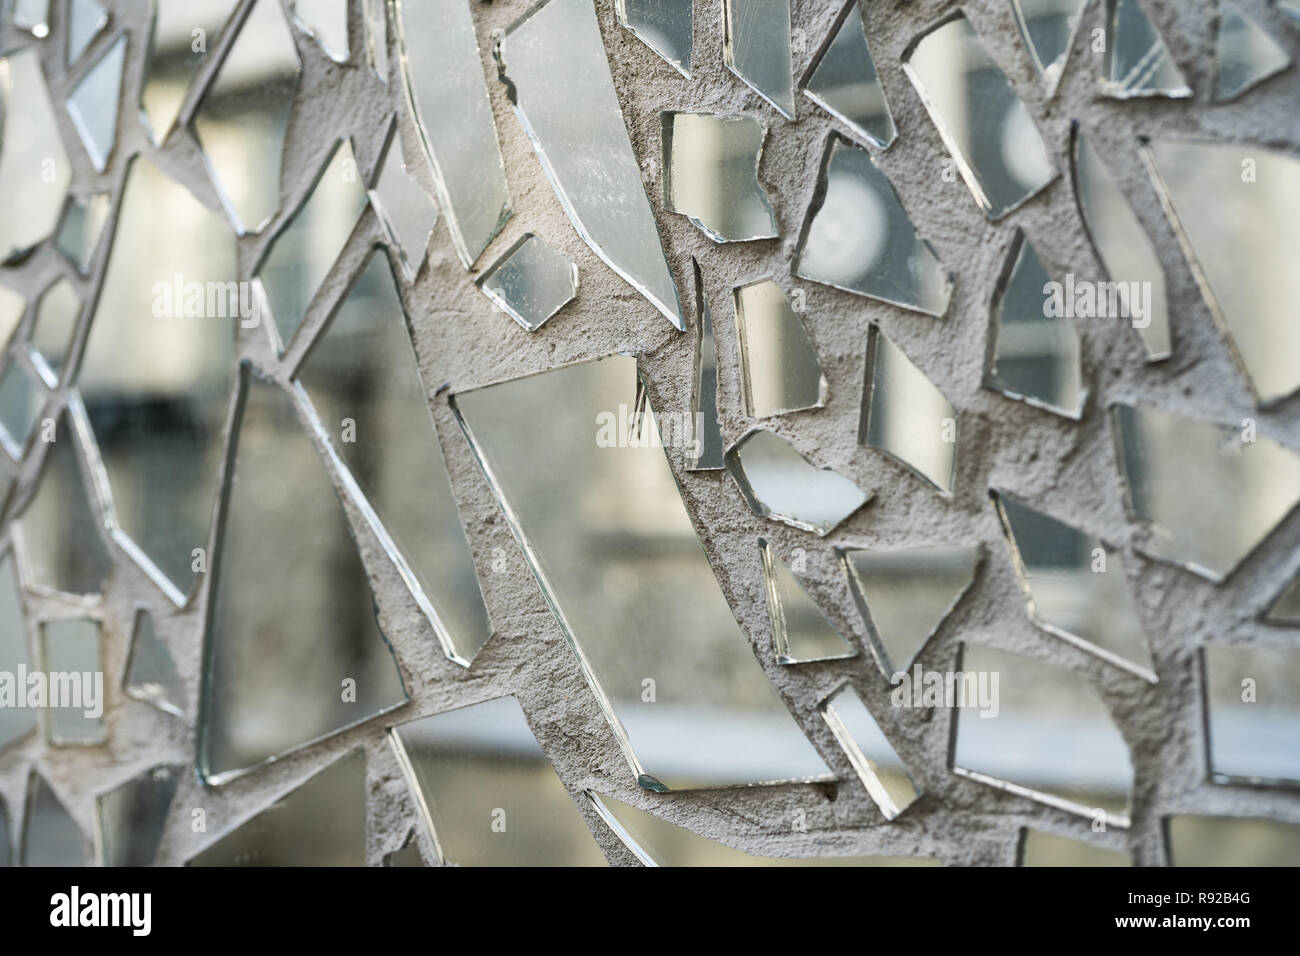 Wall With Glass Shards Stock Photos & Wall With Glass Shards Stock